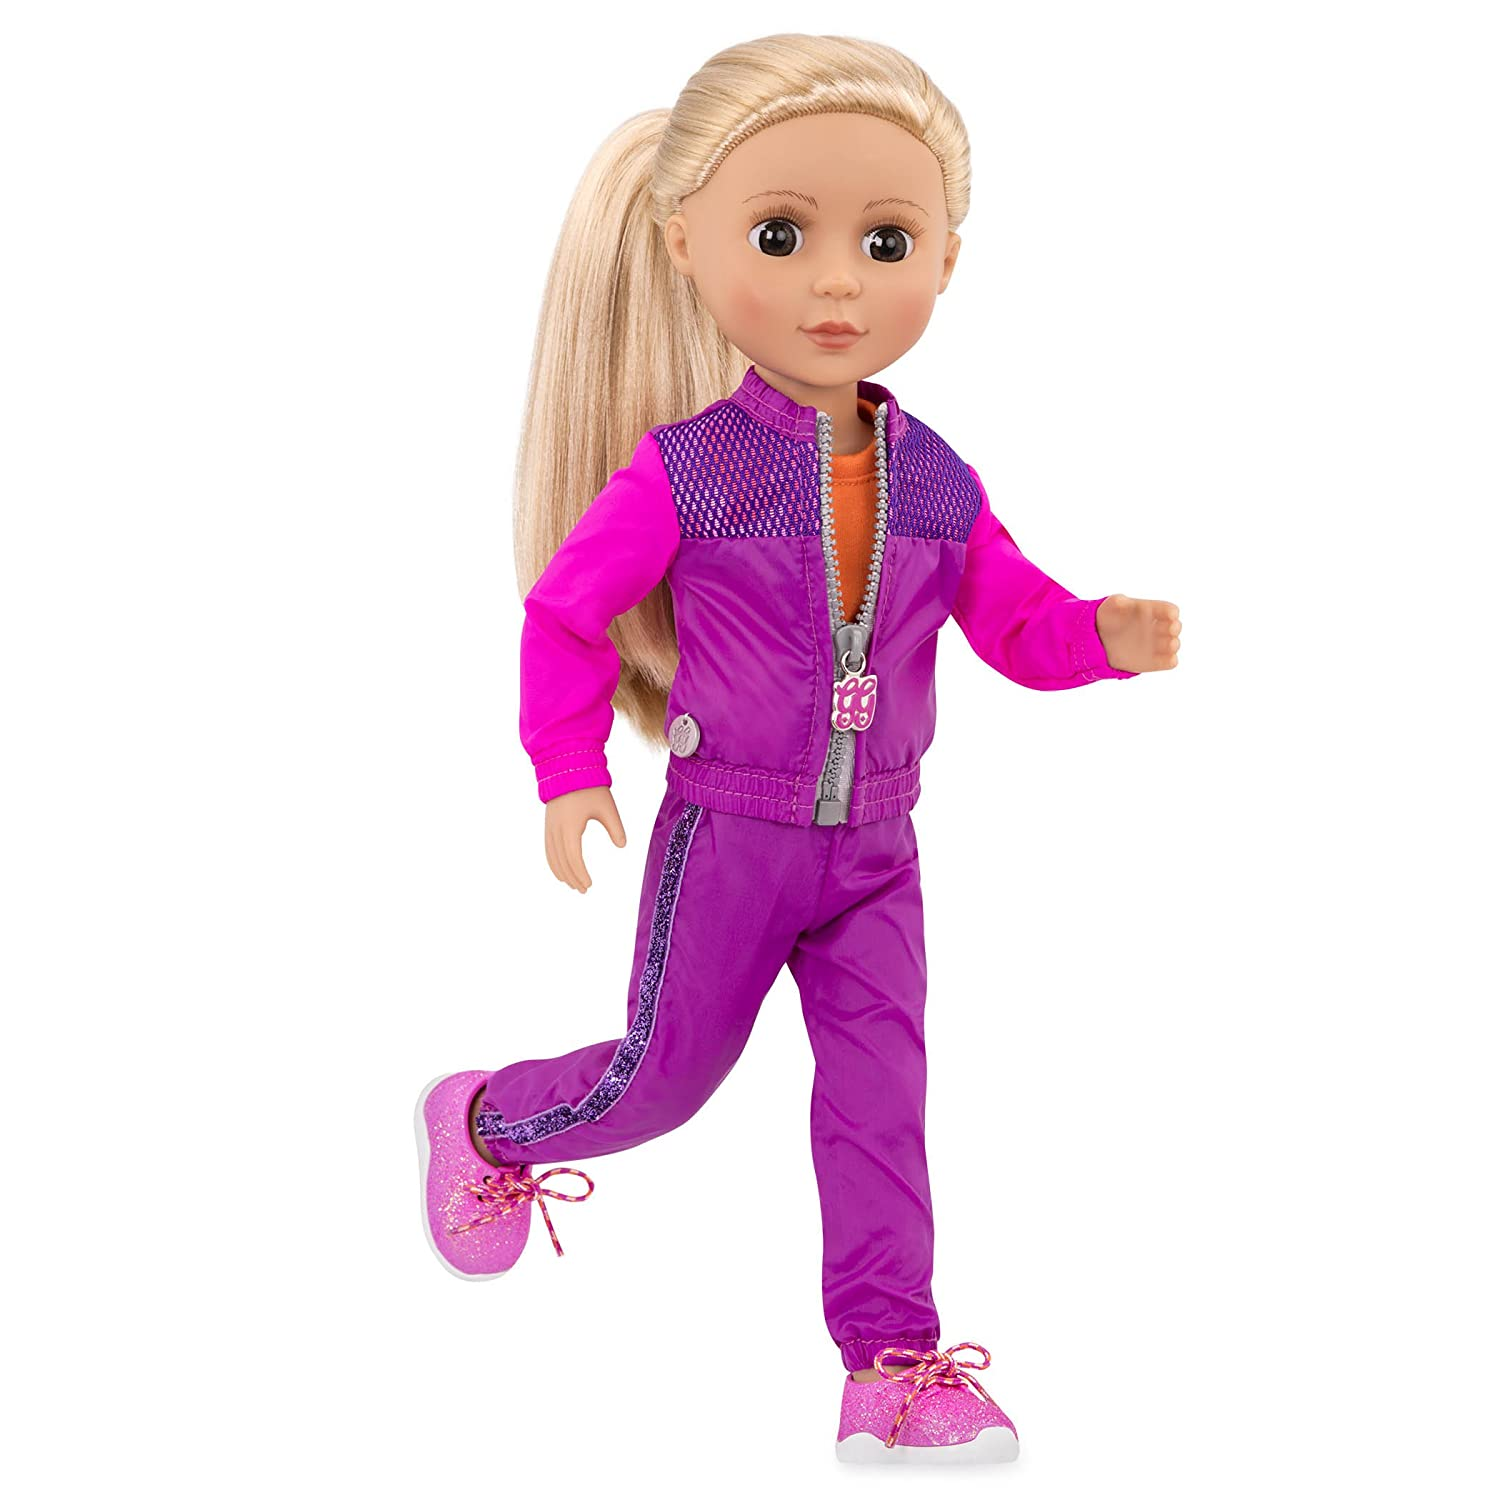 Glitter Girls by Battat - Shine and Dash Outfit -14-inch Doll Clothes– Toys, Clothes and Accessories For Girls 3-Year-Old and Up Branford LTD GG50016Z